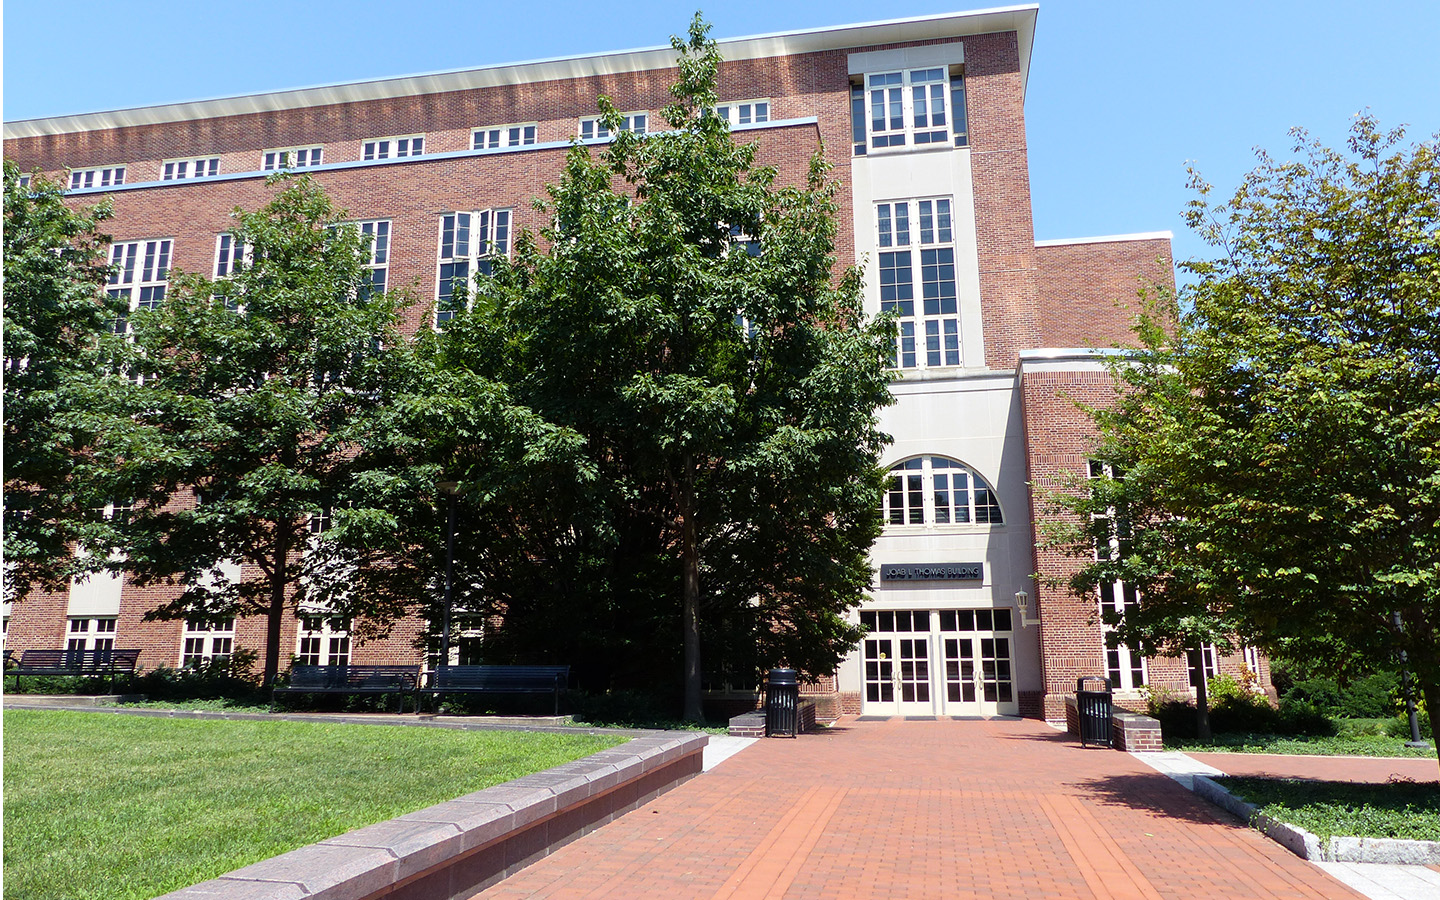 Thomas Building on the University Park campus.